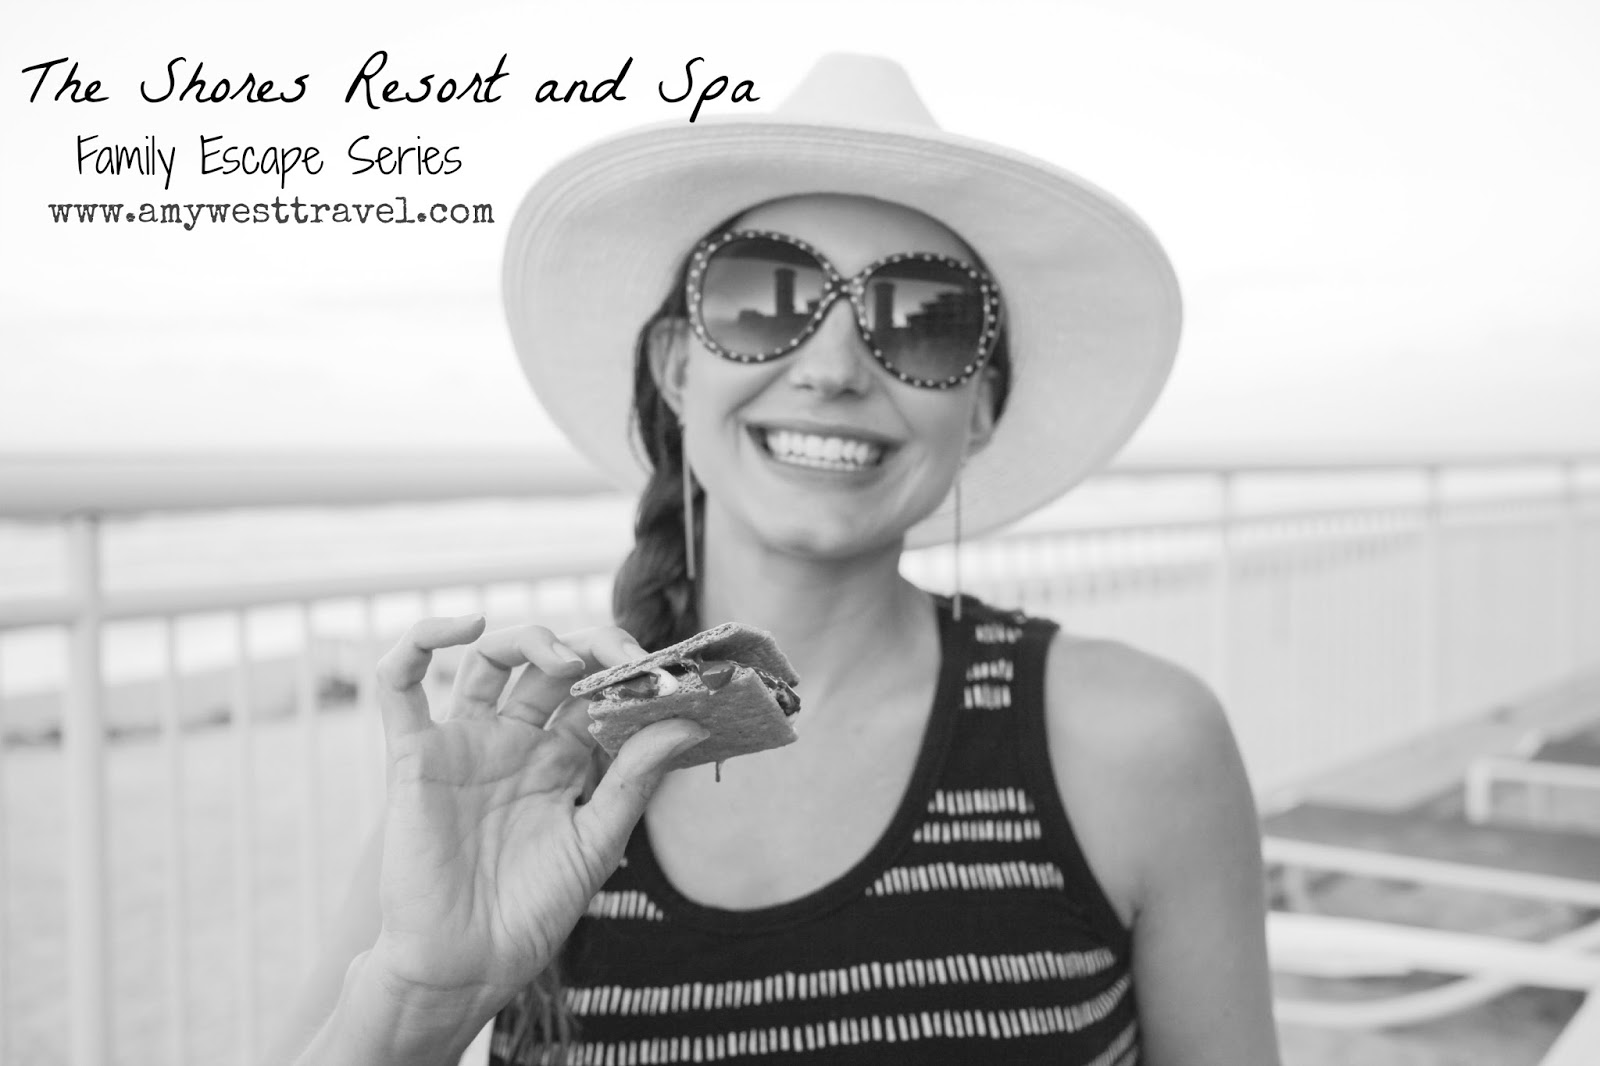 Amy West, travel blogger at The Shores Resort and Spa in Daytona